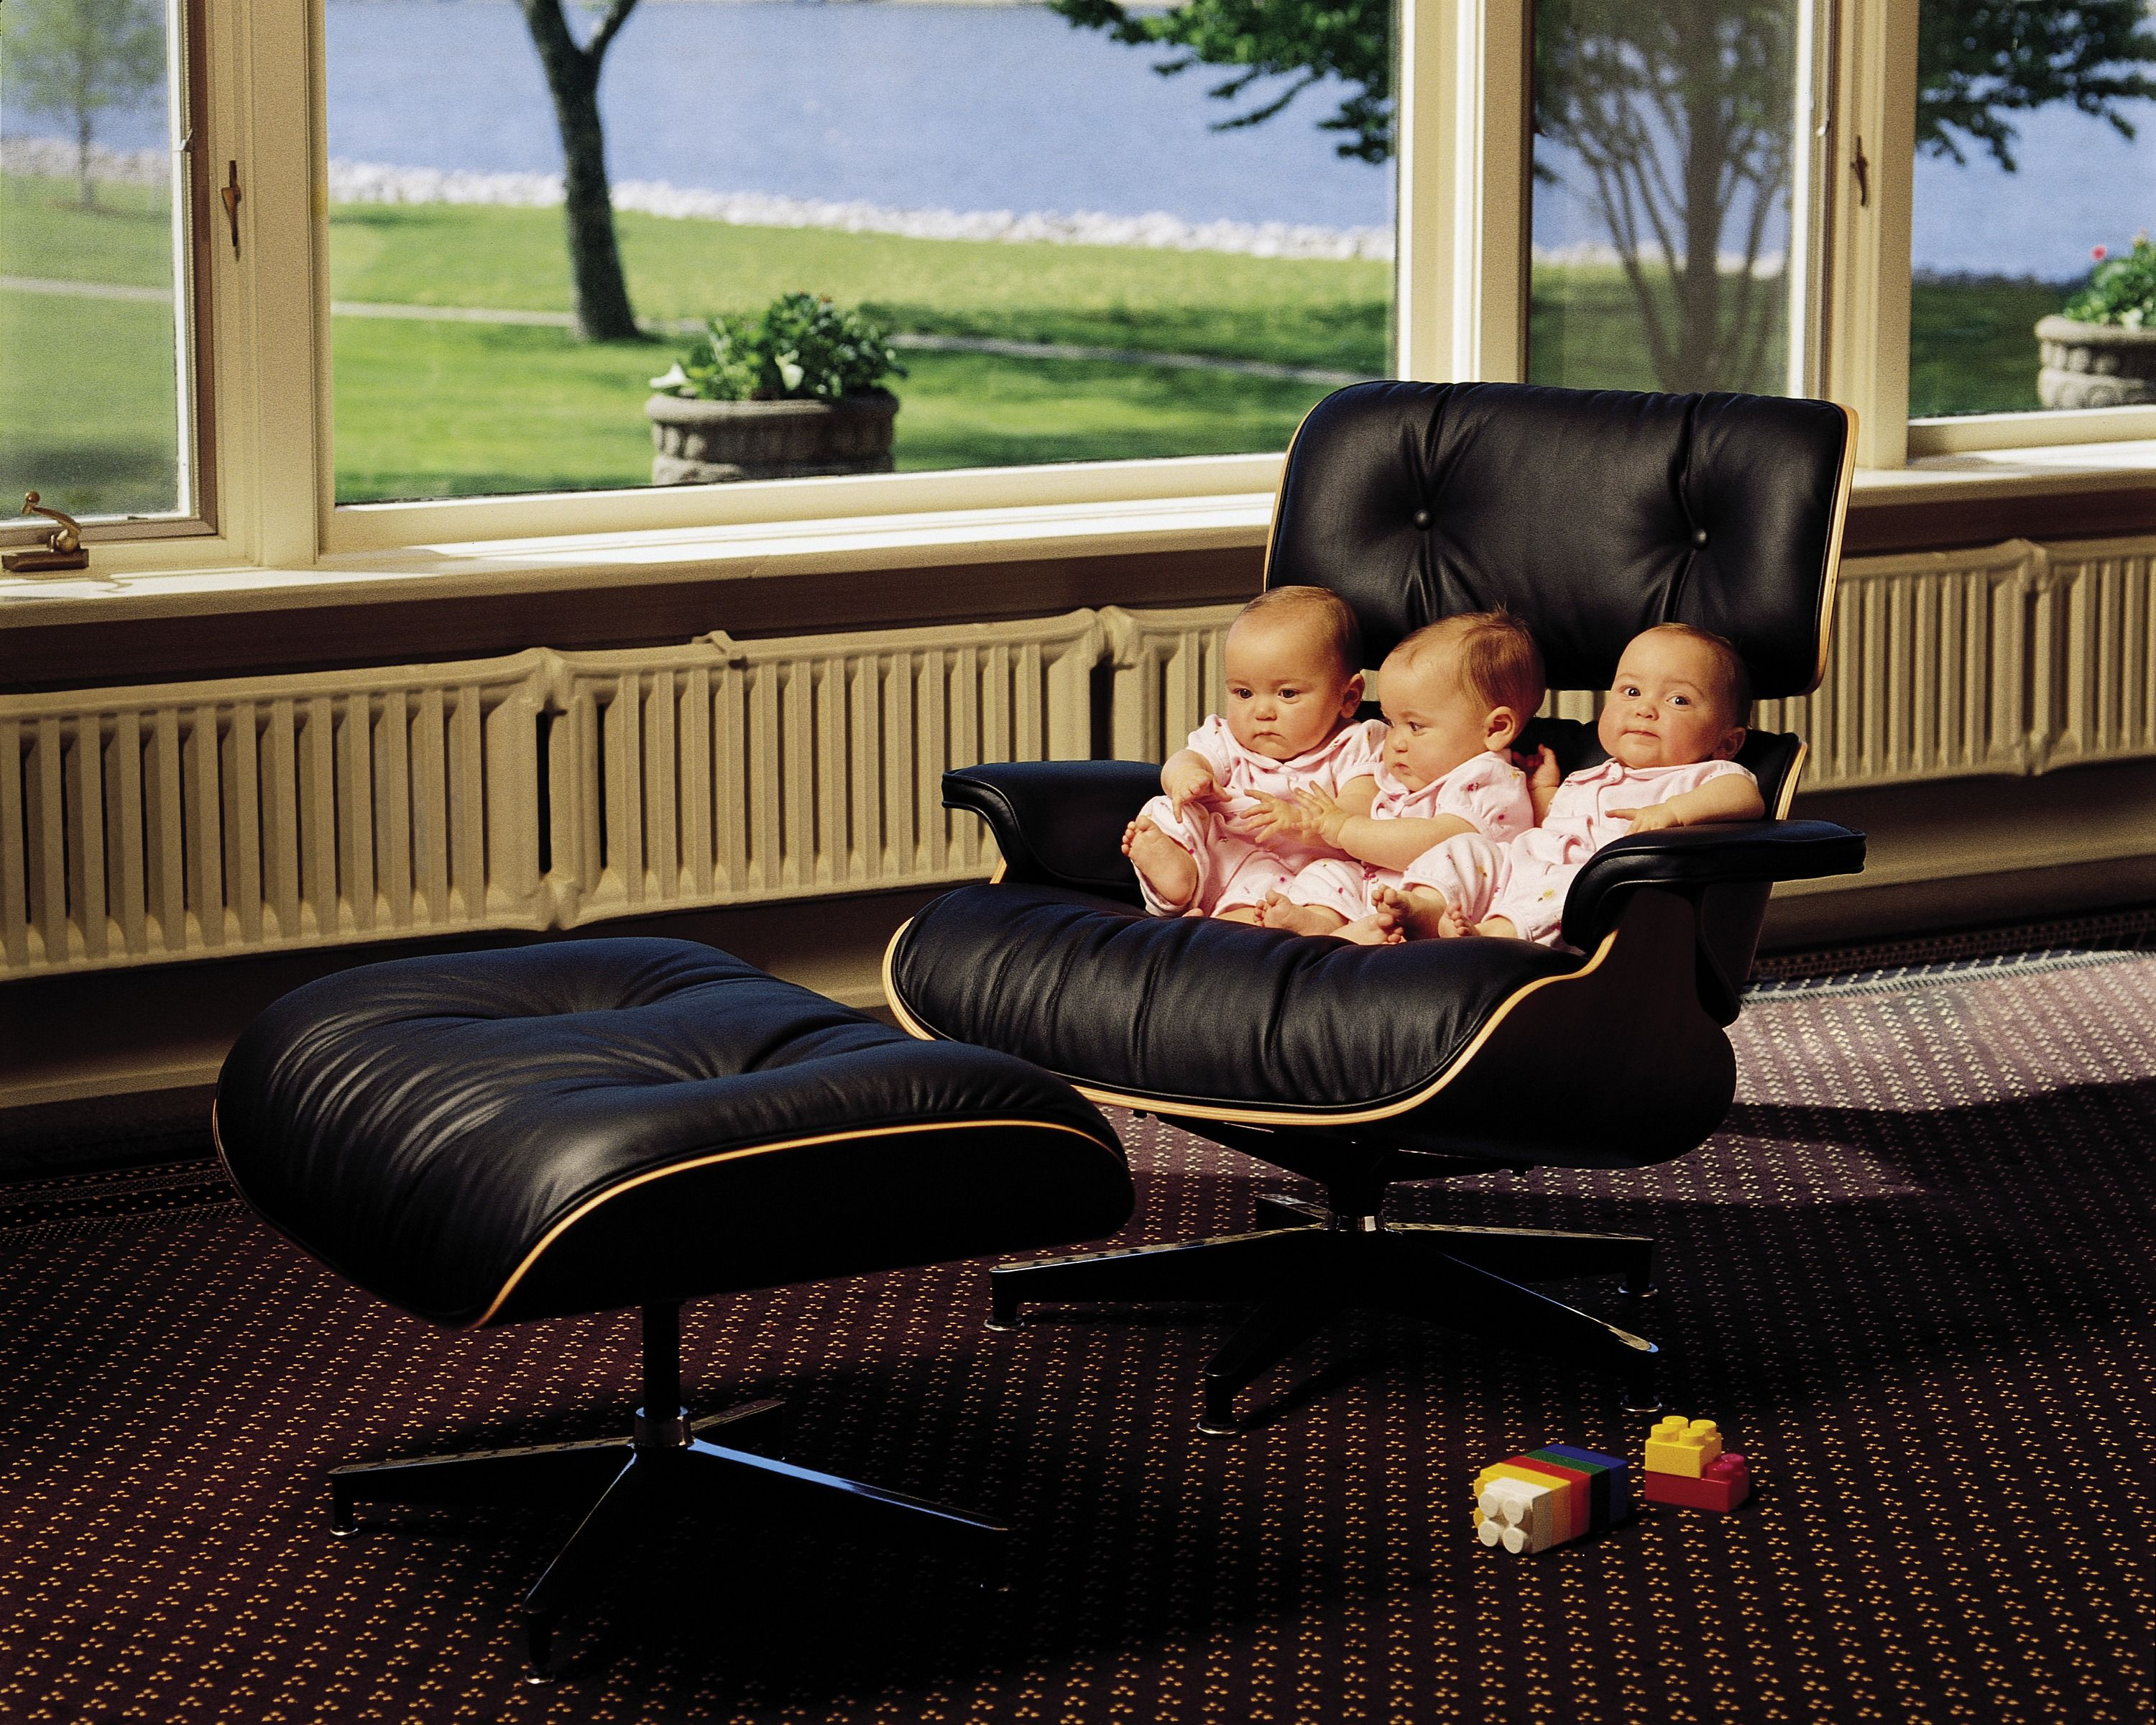 Eames Lounge Chair   Vitra   Babys In The Chair!